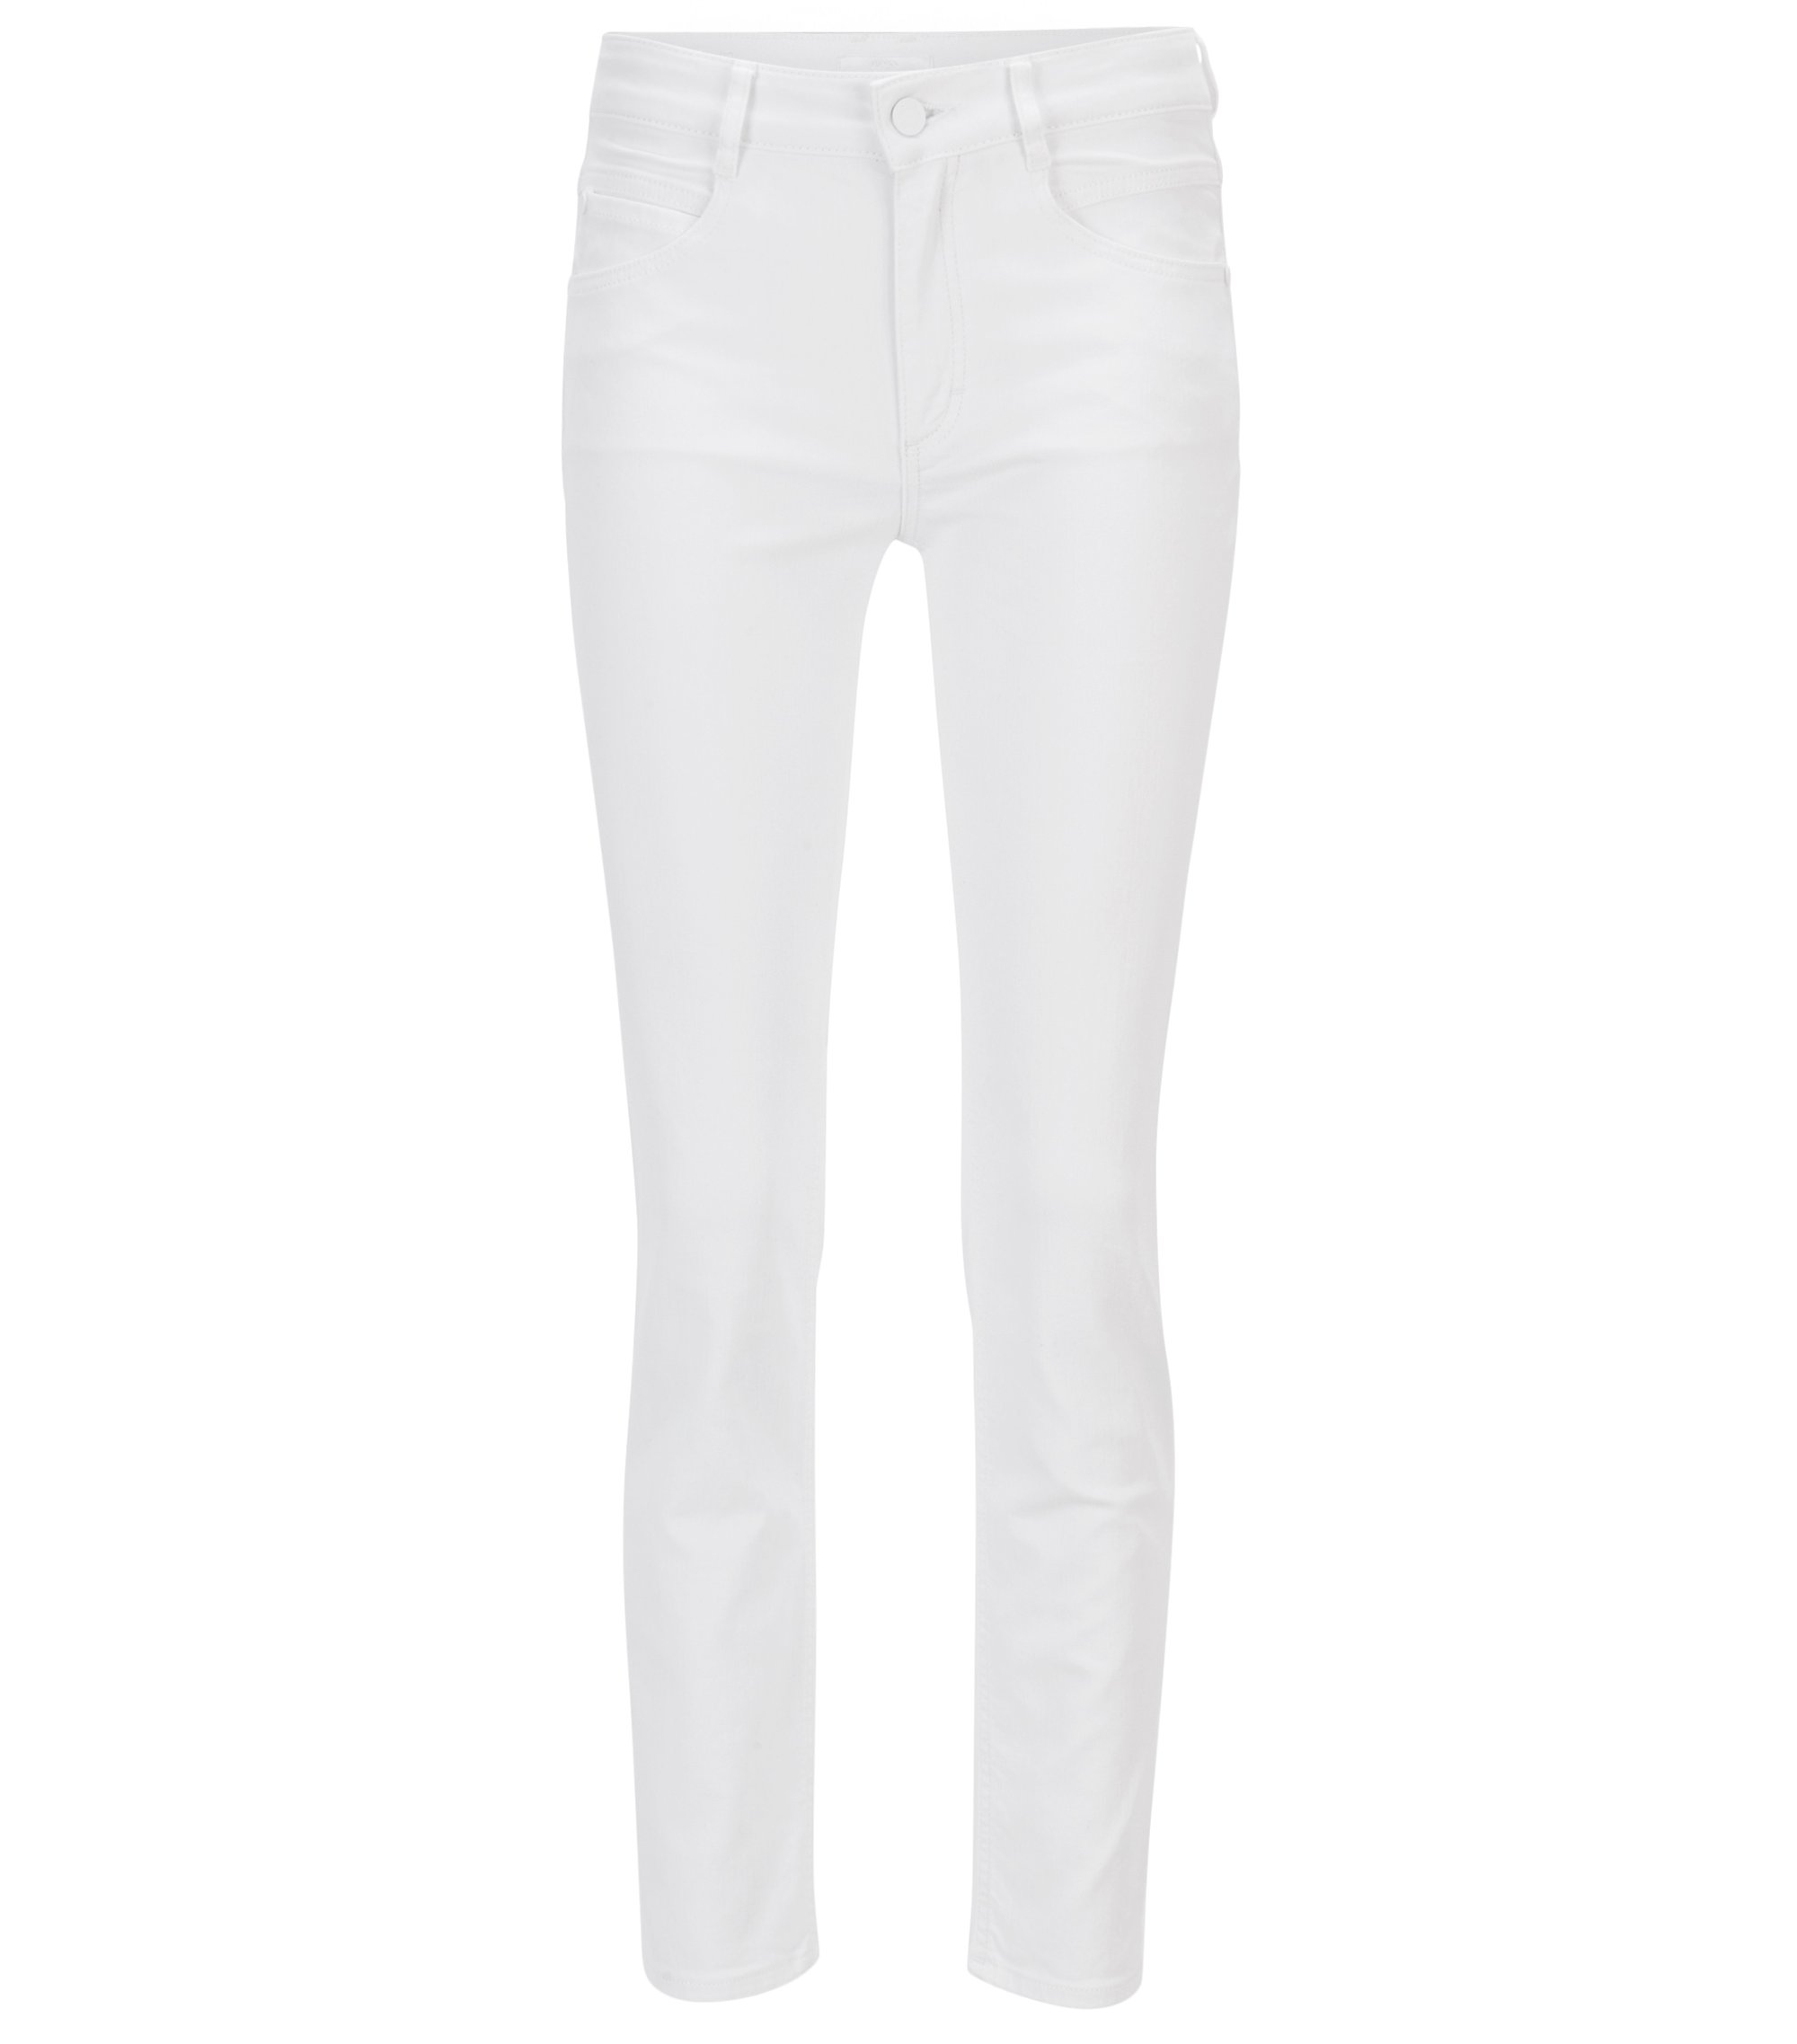 Streth Cotton Jean | Nelin , White